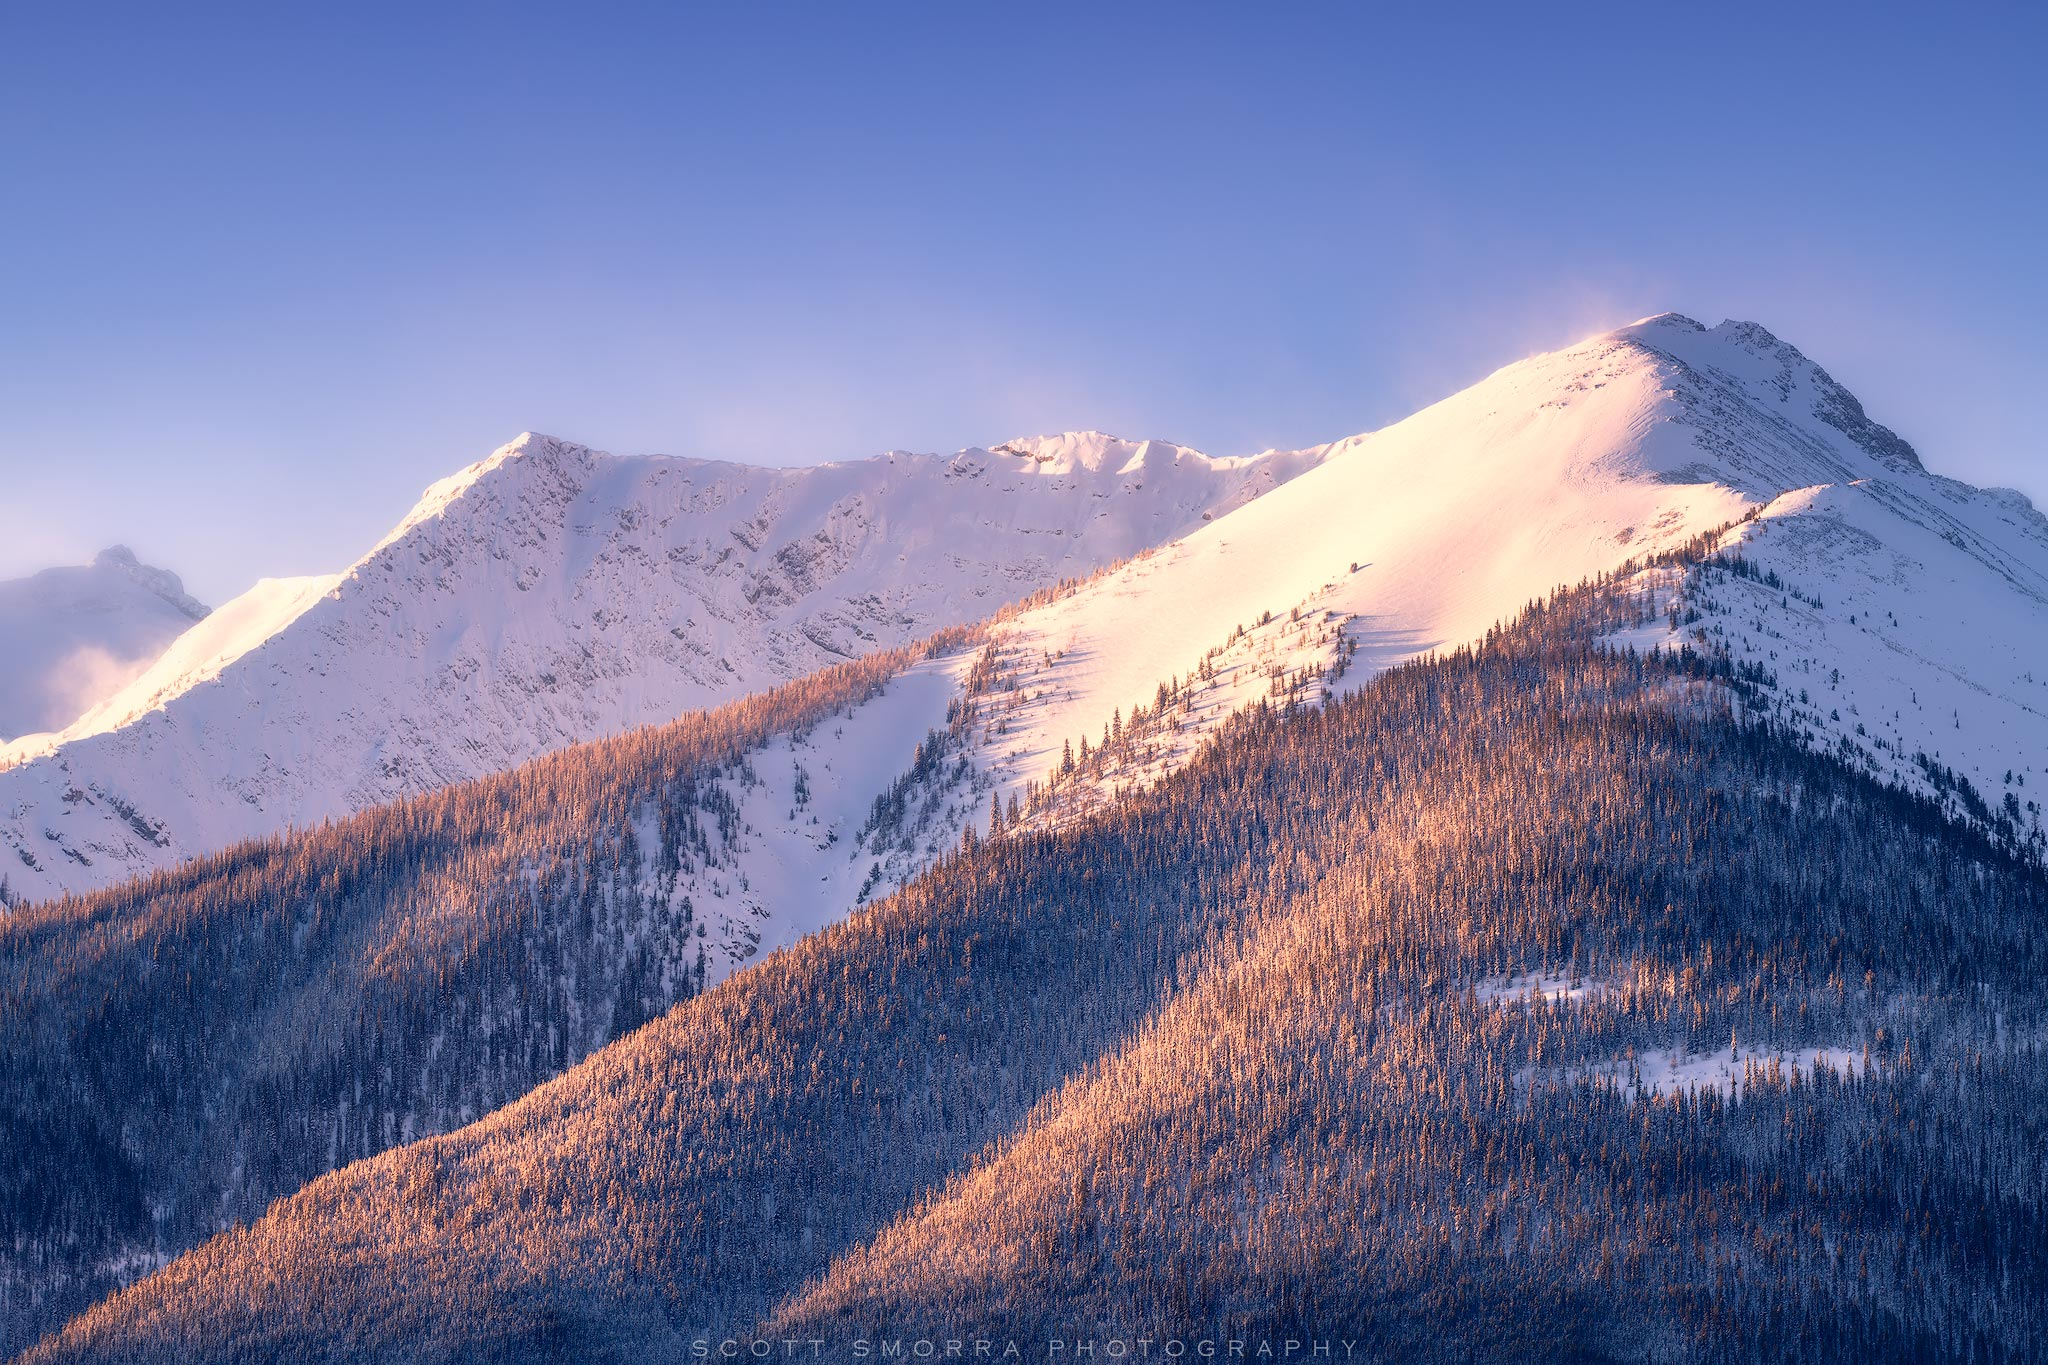 Fine Art Limited Edition of 50 - Early morning light illuminates the summits of several mountains in Banff National Park, Alberta...